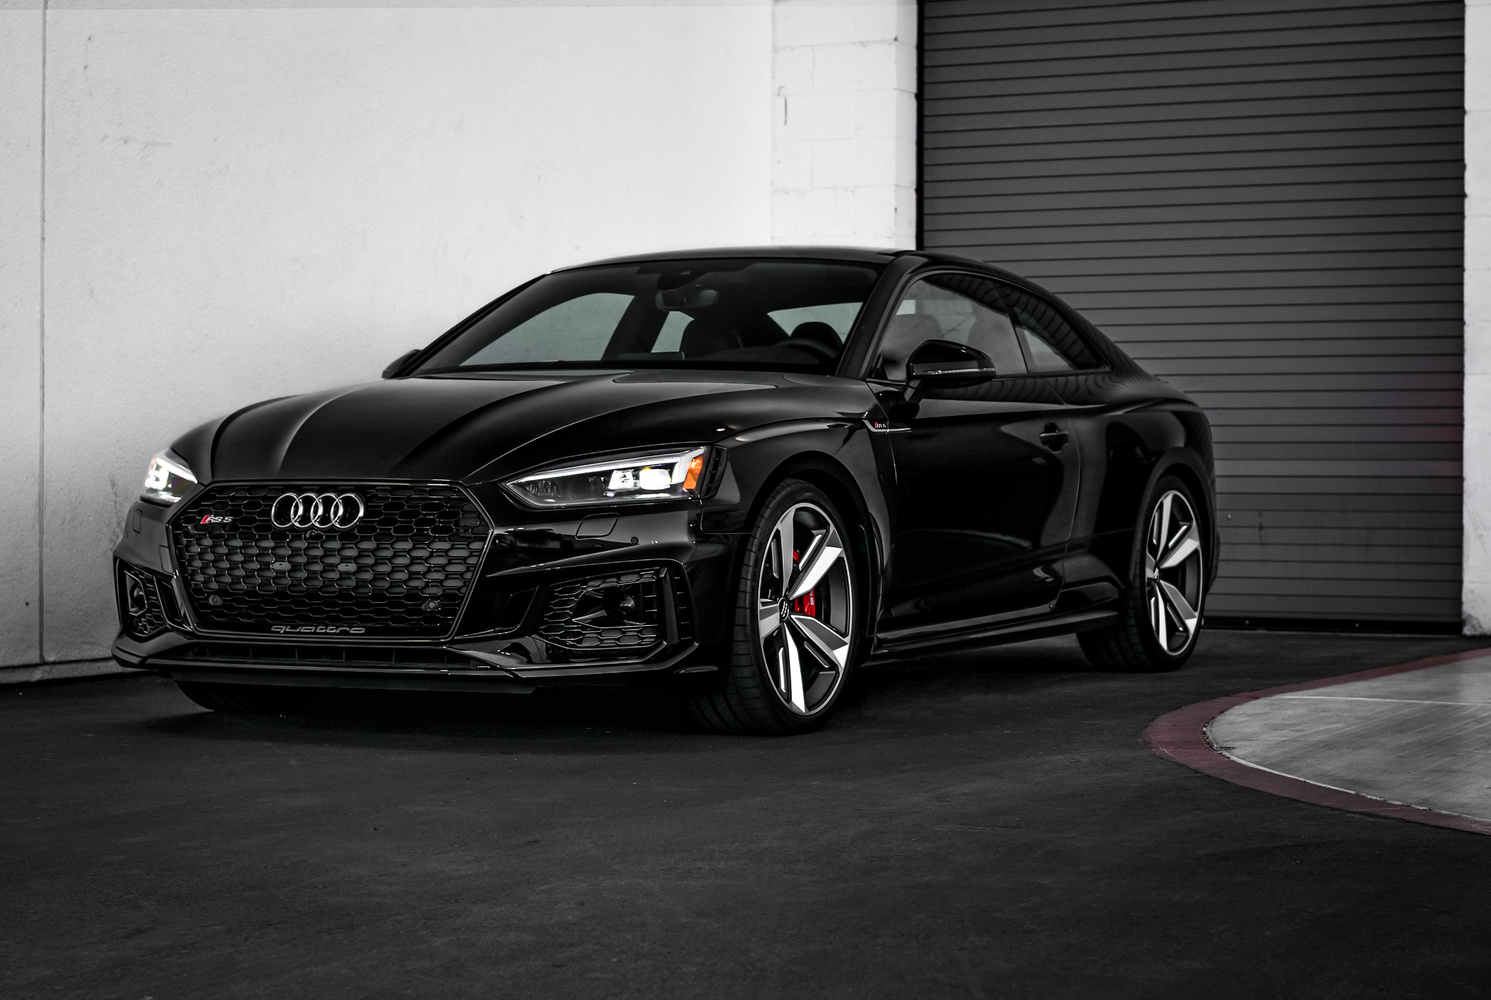 Black RS5 Coupe by Travis Pinney